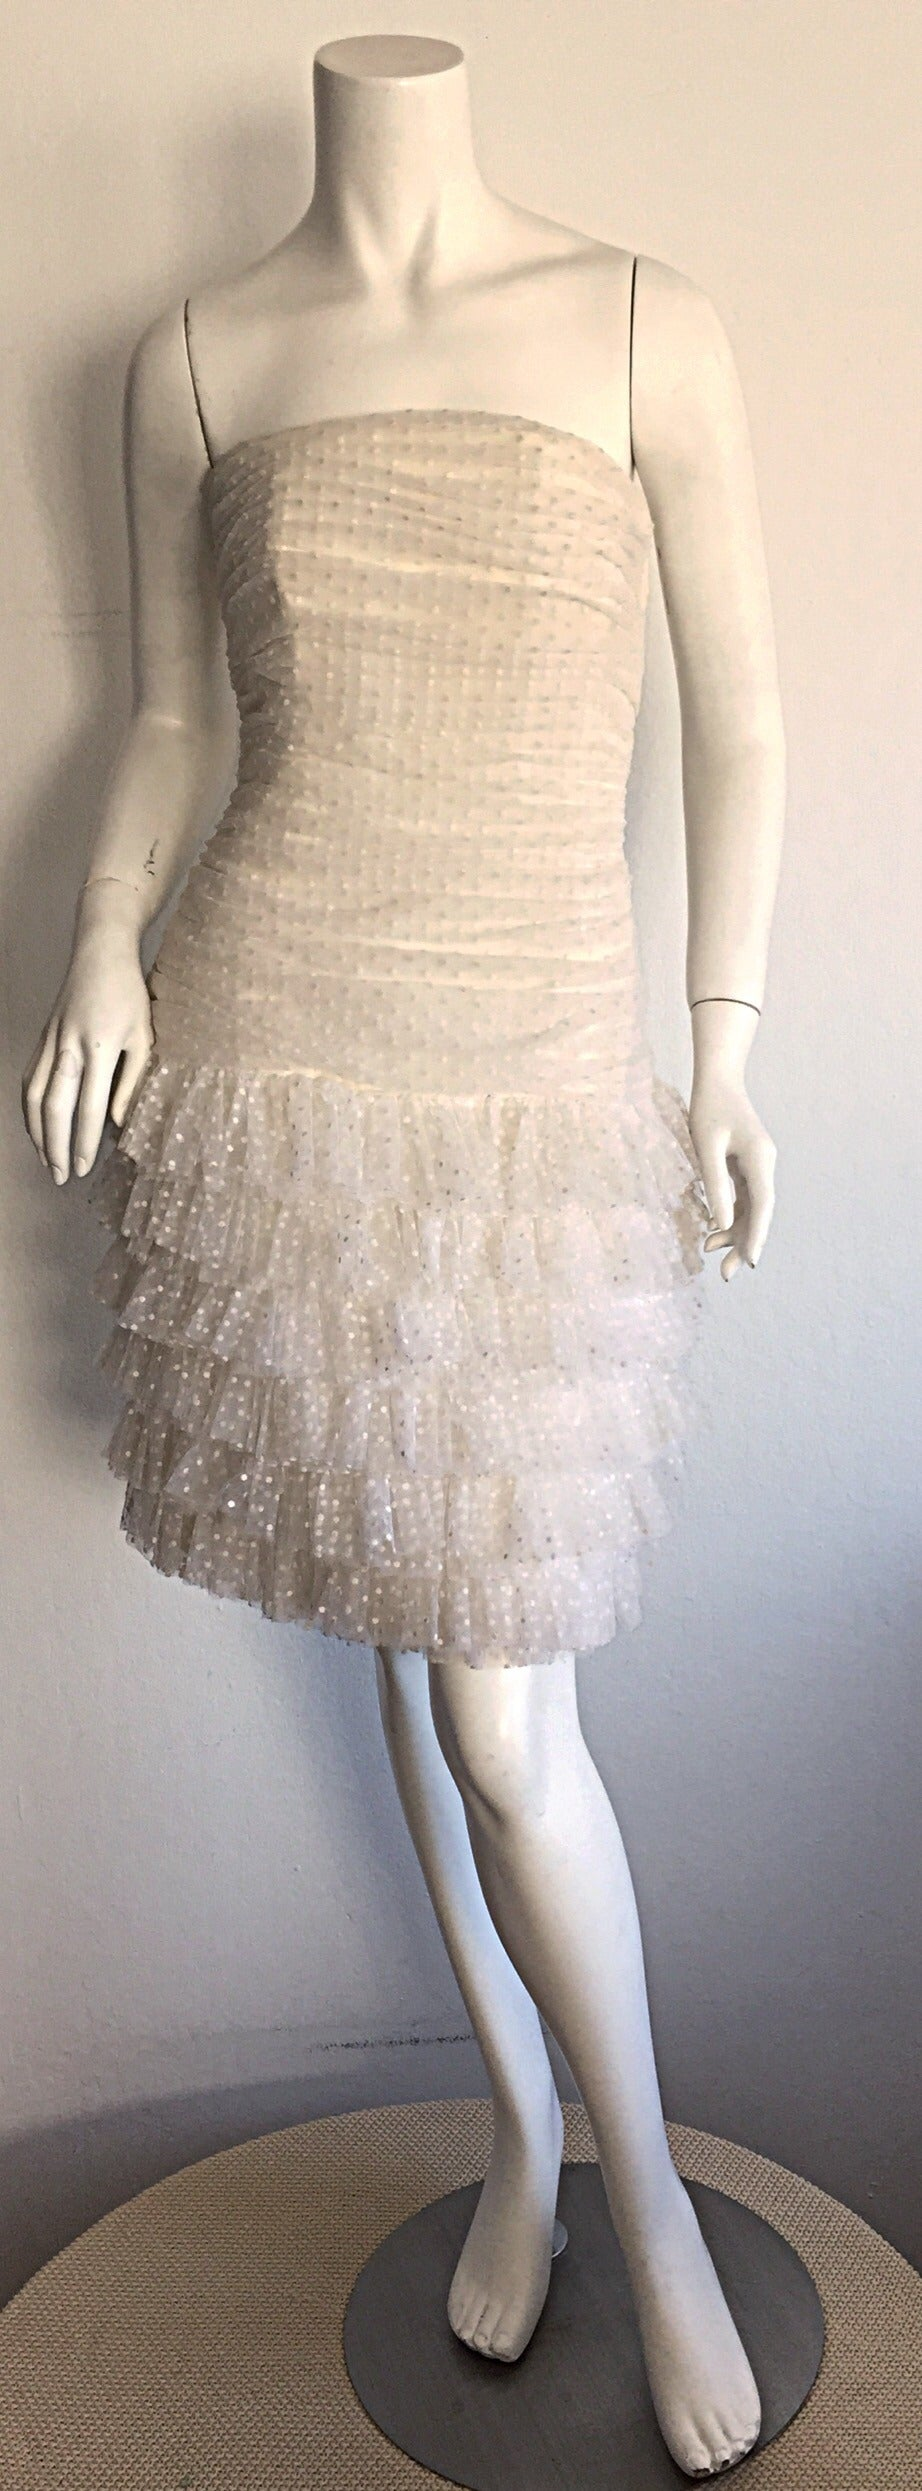 1990s Carolyne Roehm White Polka Dot ' Feathered ' Strapless Wedding Dress 2